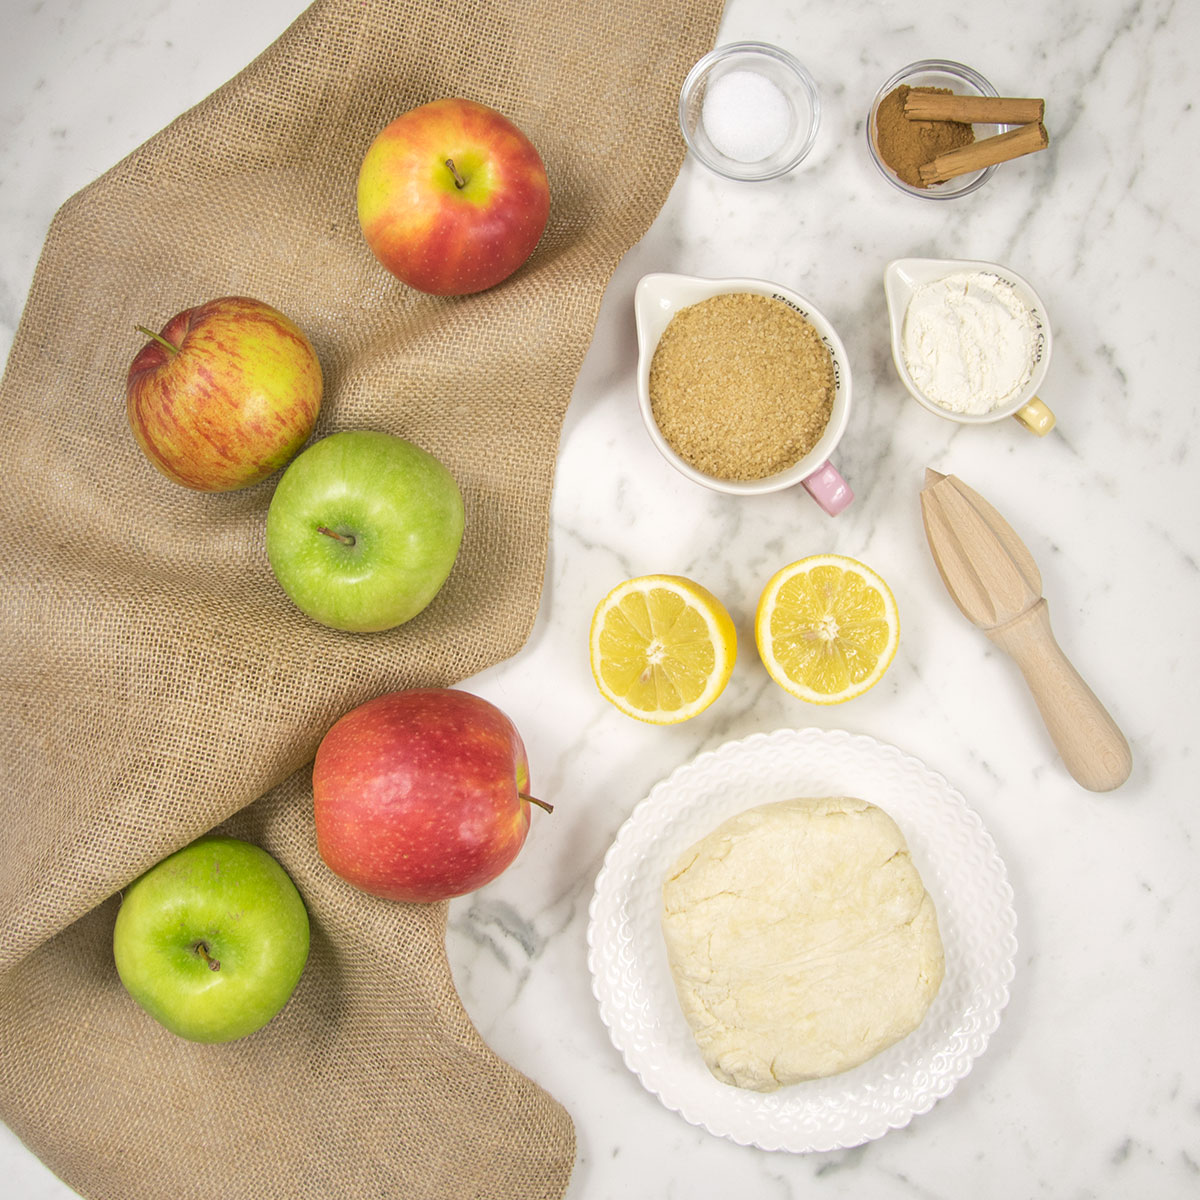 apple_pie_ingredienti